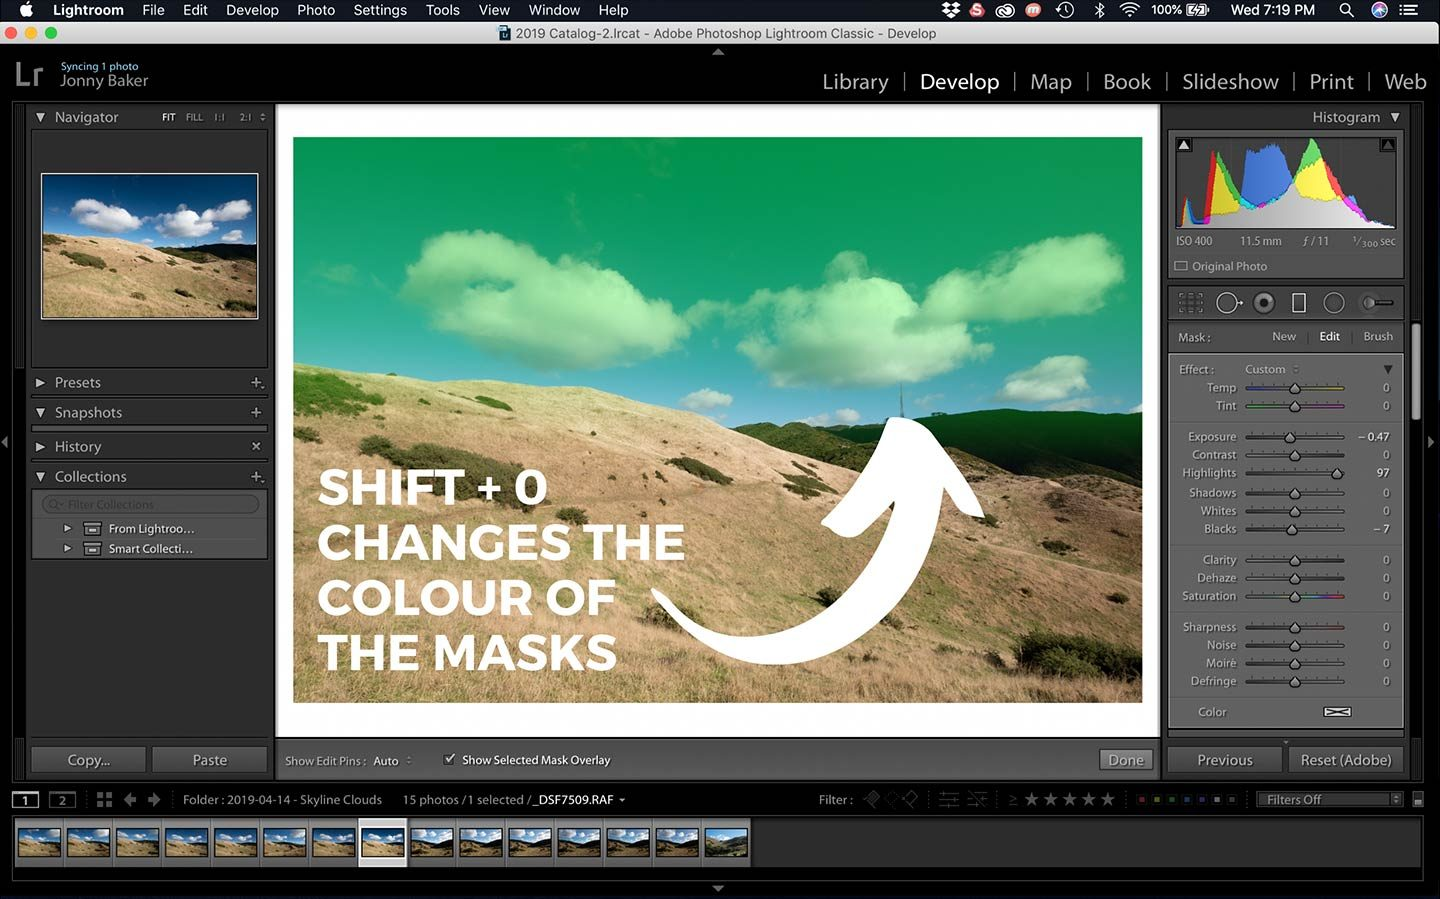 This screenshot shows how you can change the masks of adjustment filters within Lightroom by pressing Shift + O